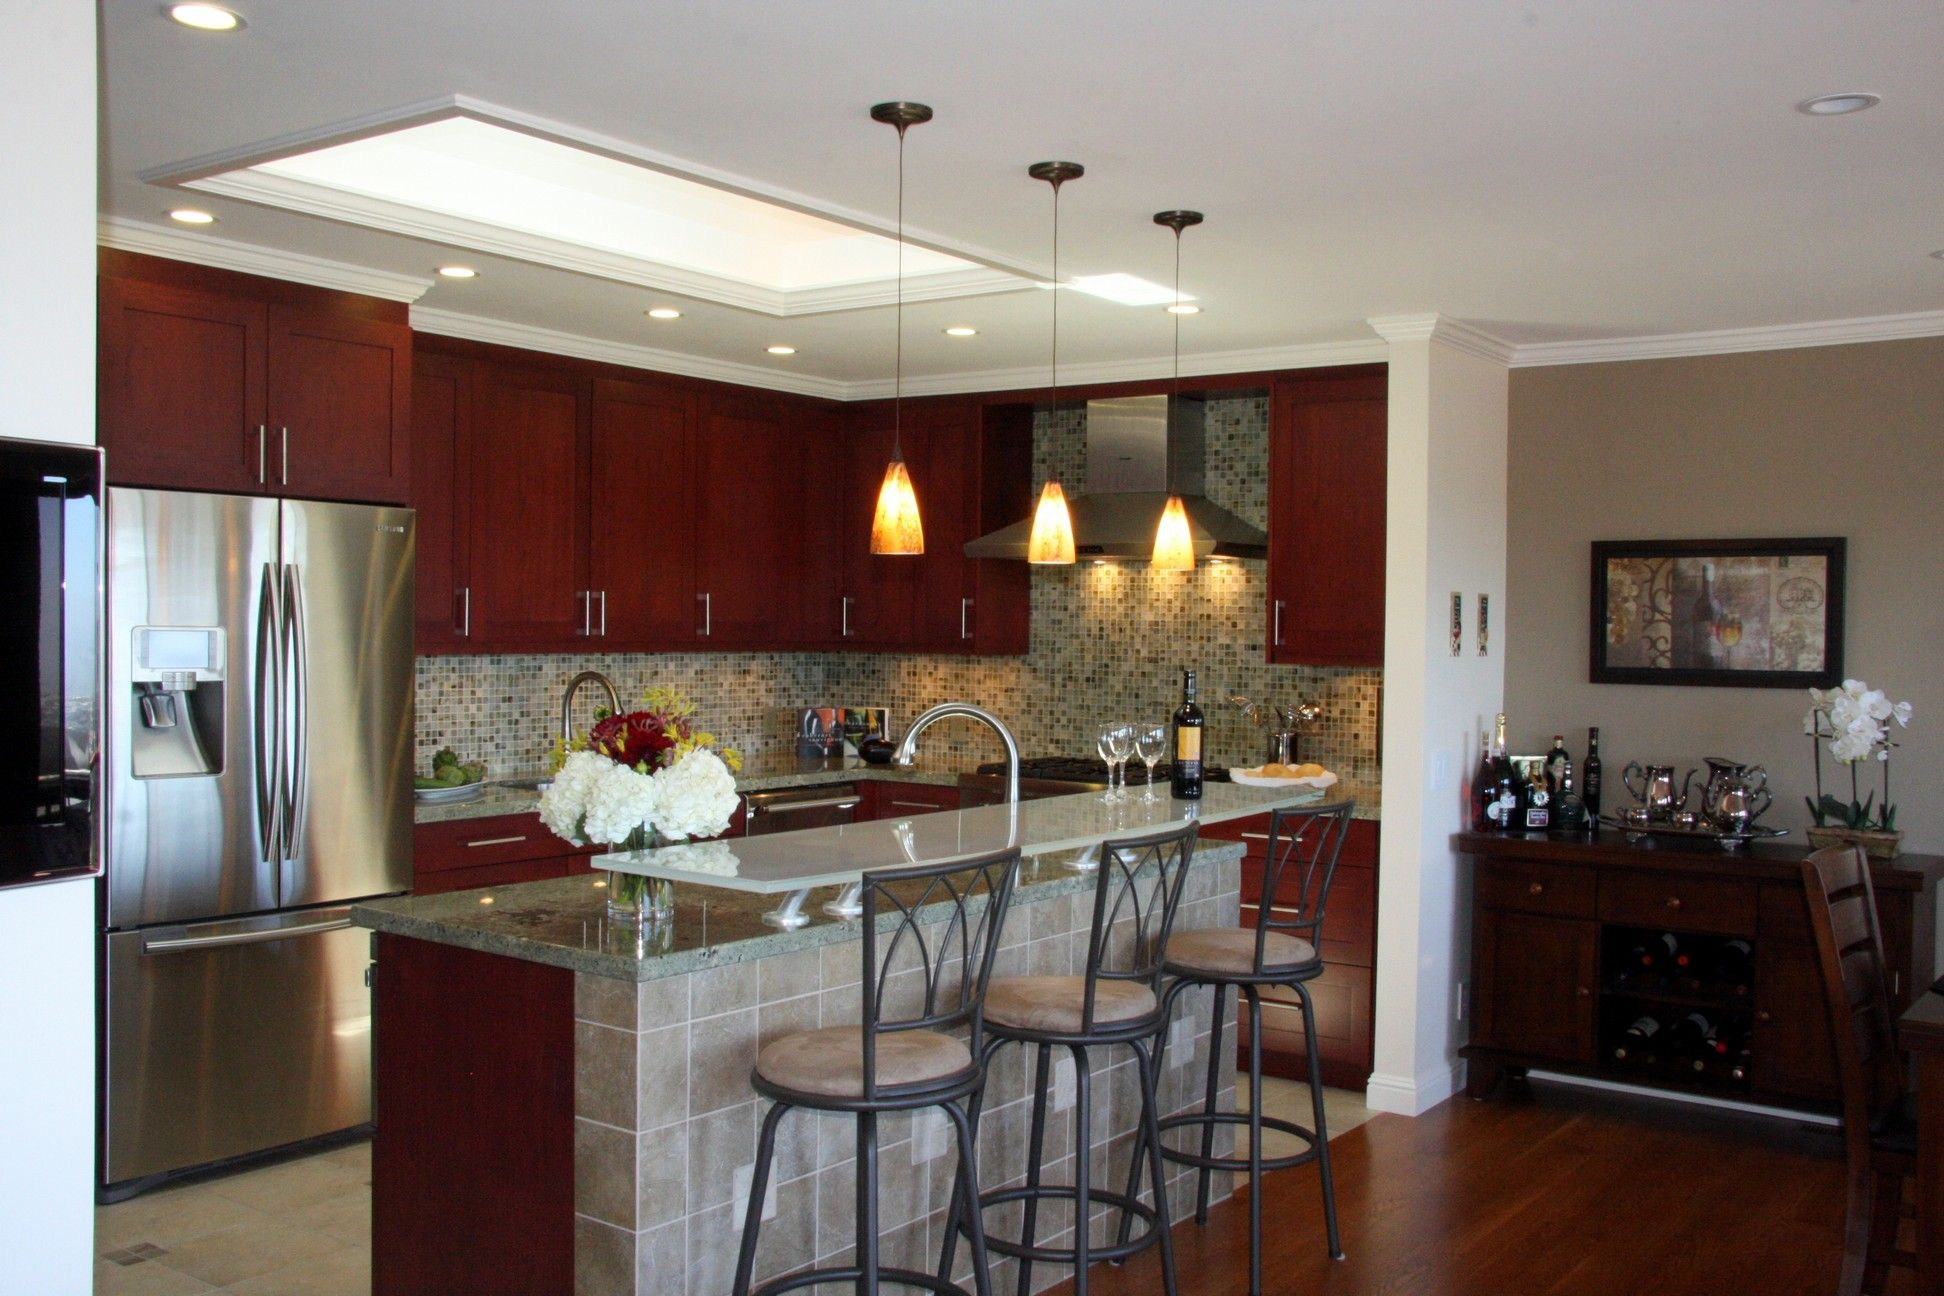 Bay Area kitchen renovation | Kitchens | Kitchen lighting ...